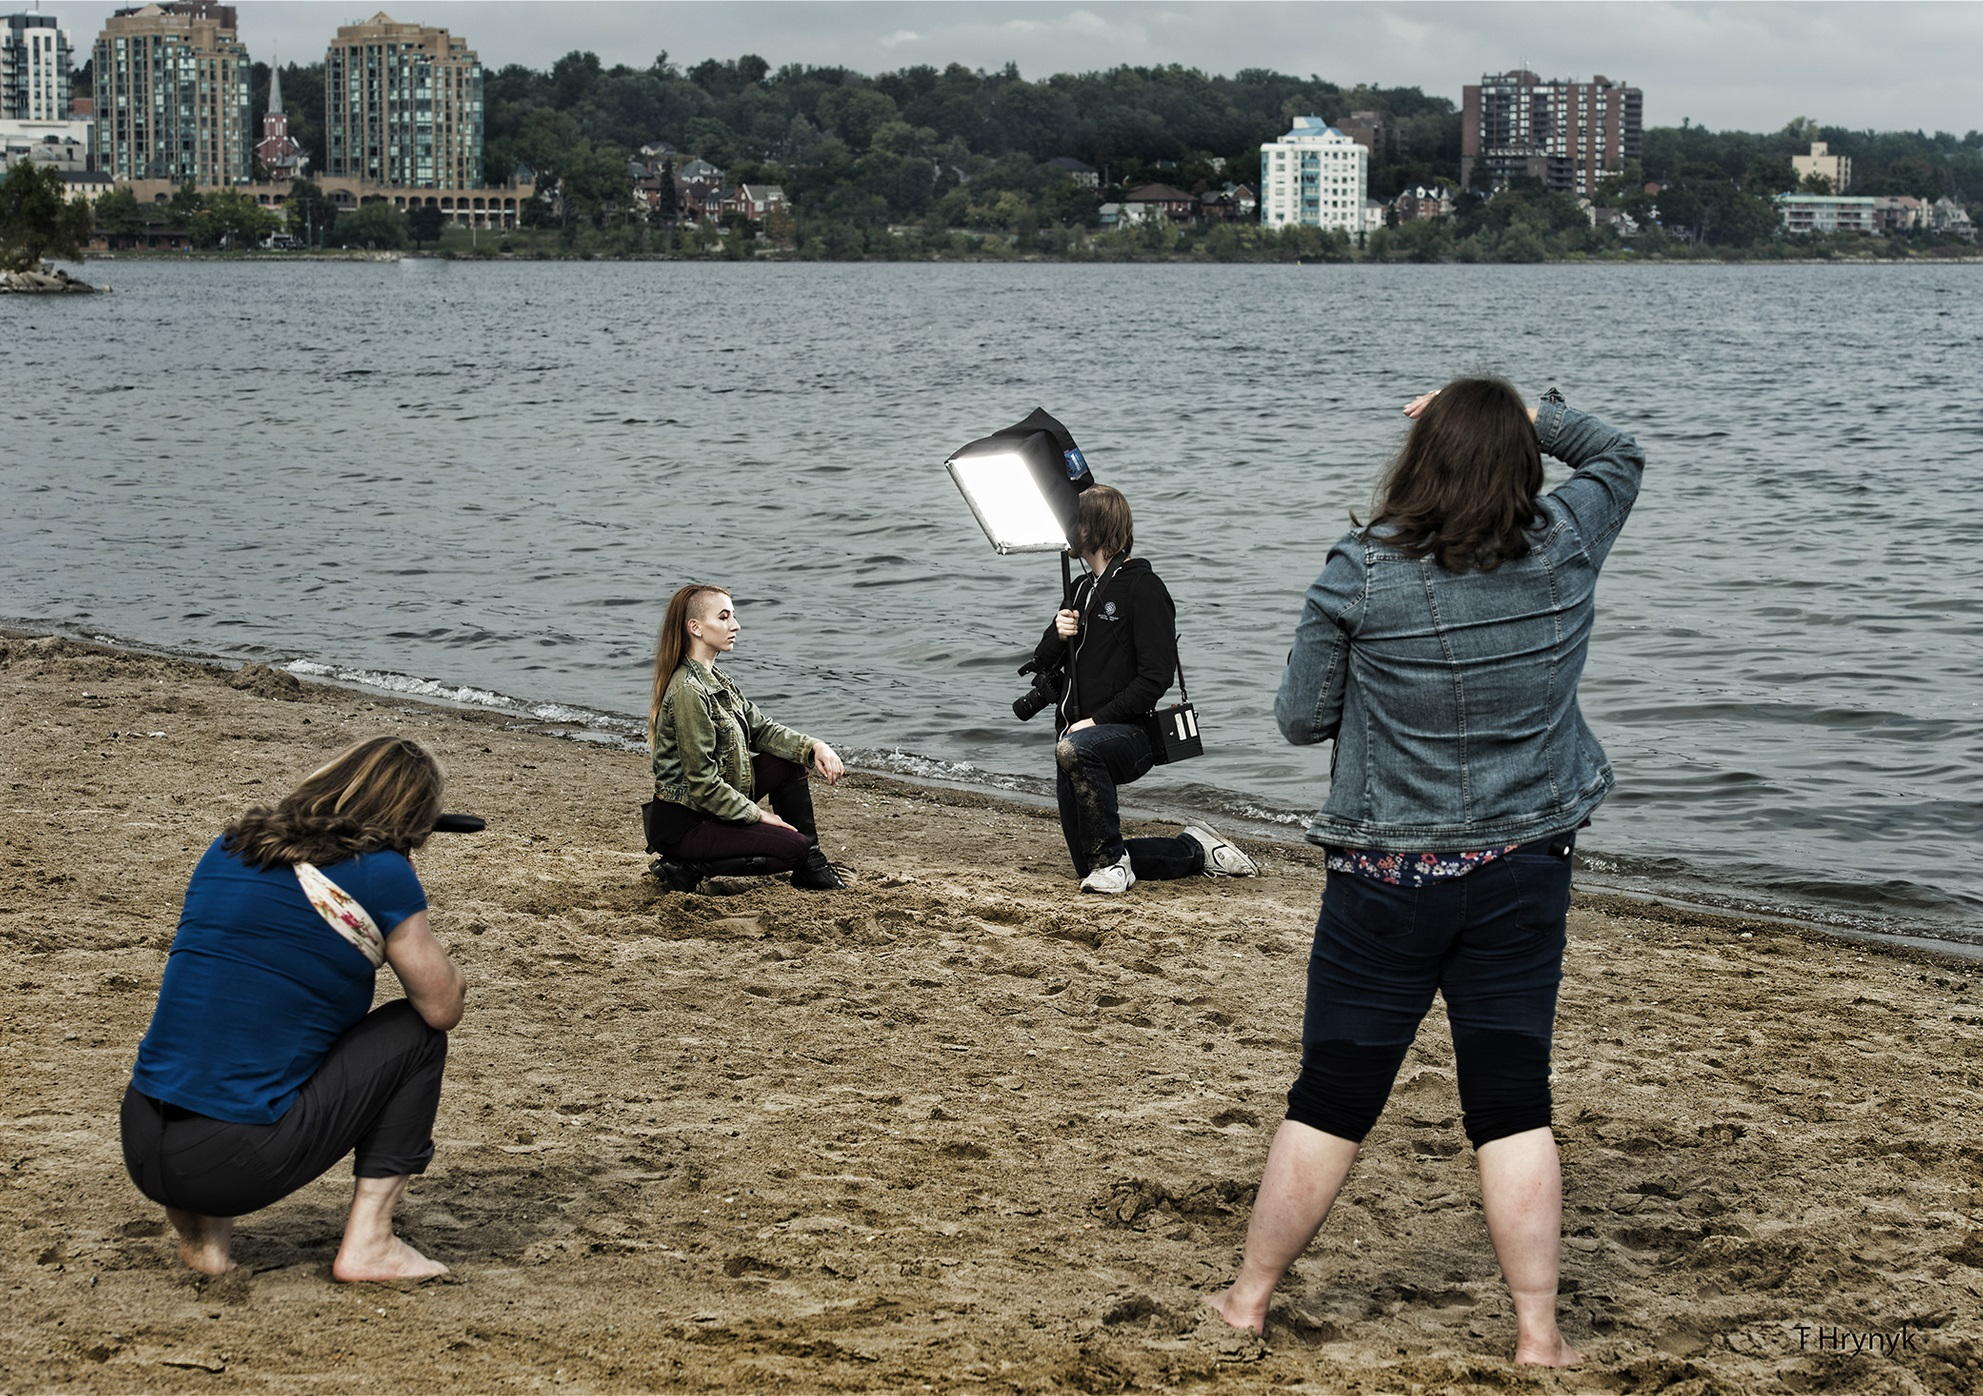 A female kneeling and posing on a beach in front of two female photographers and another female holding softbox lighting equipment